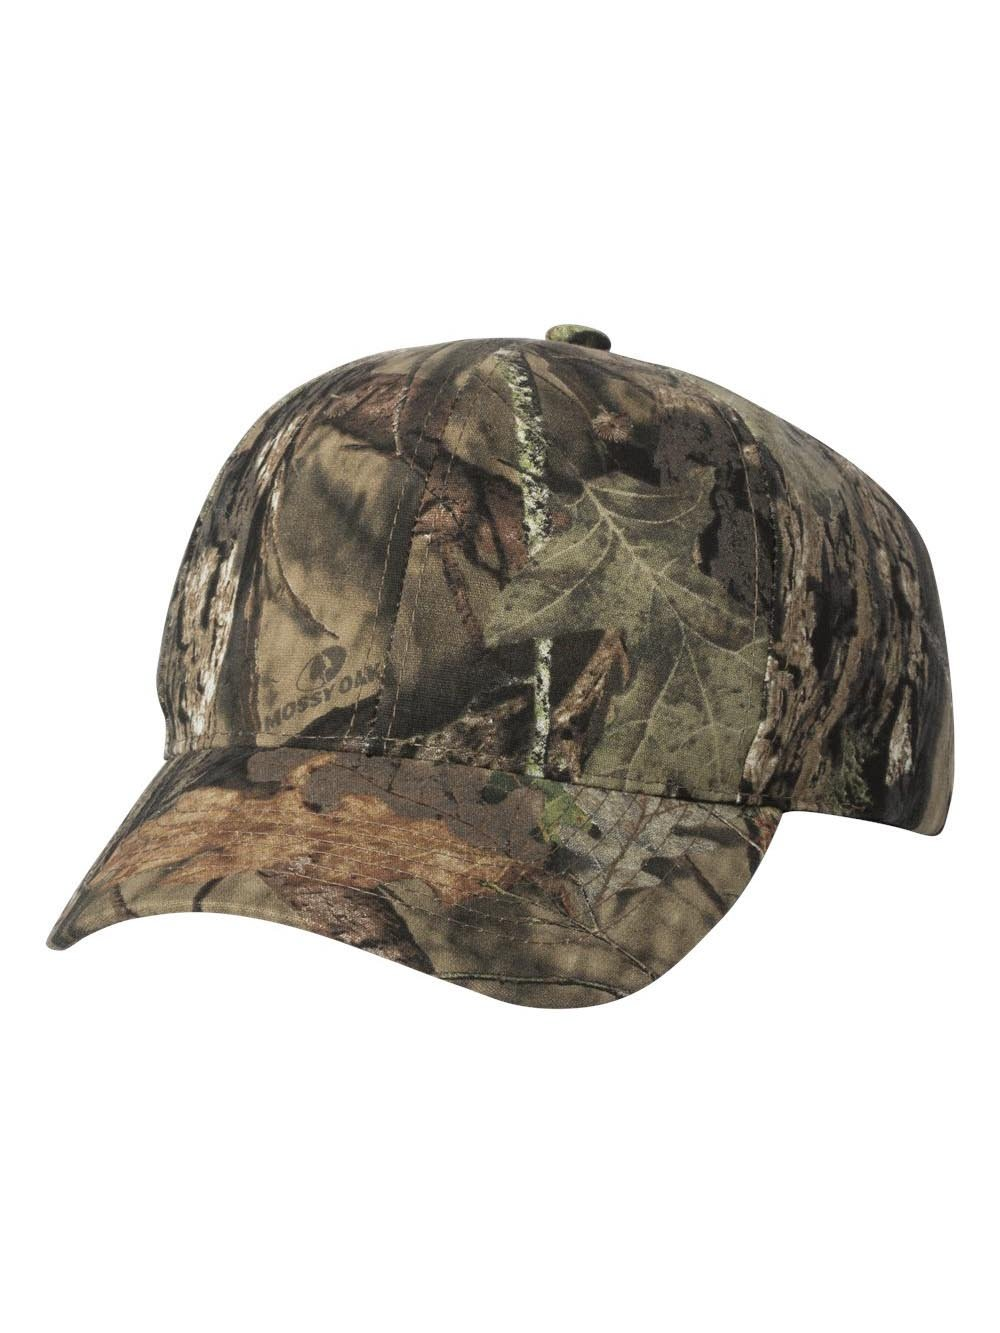 Realtree ajustable cierre de presión de plástico en blanco tapón Mossy Oak Country 301IS